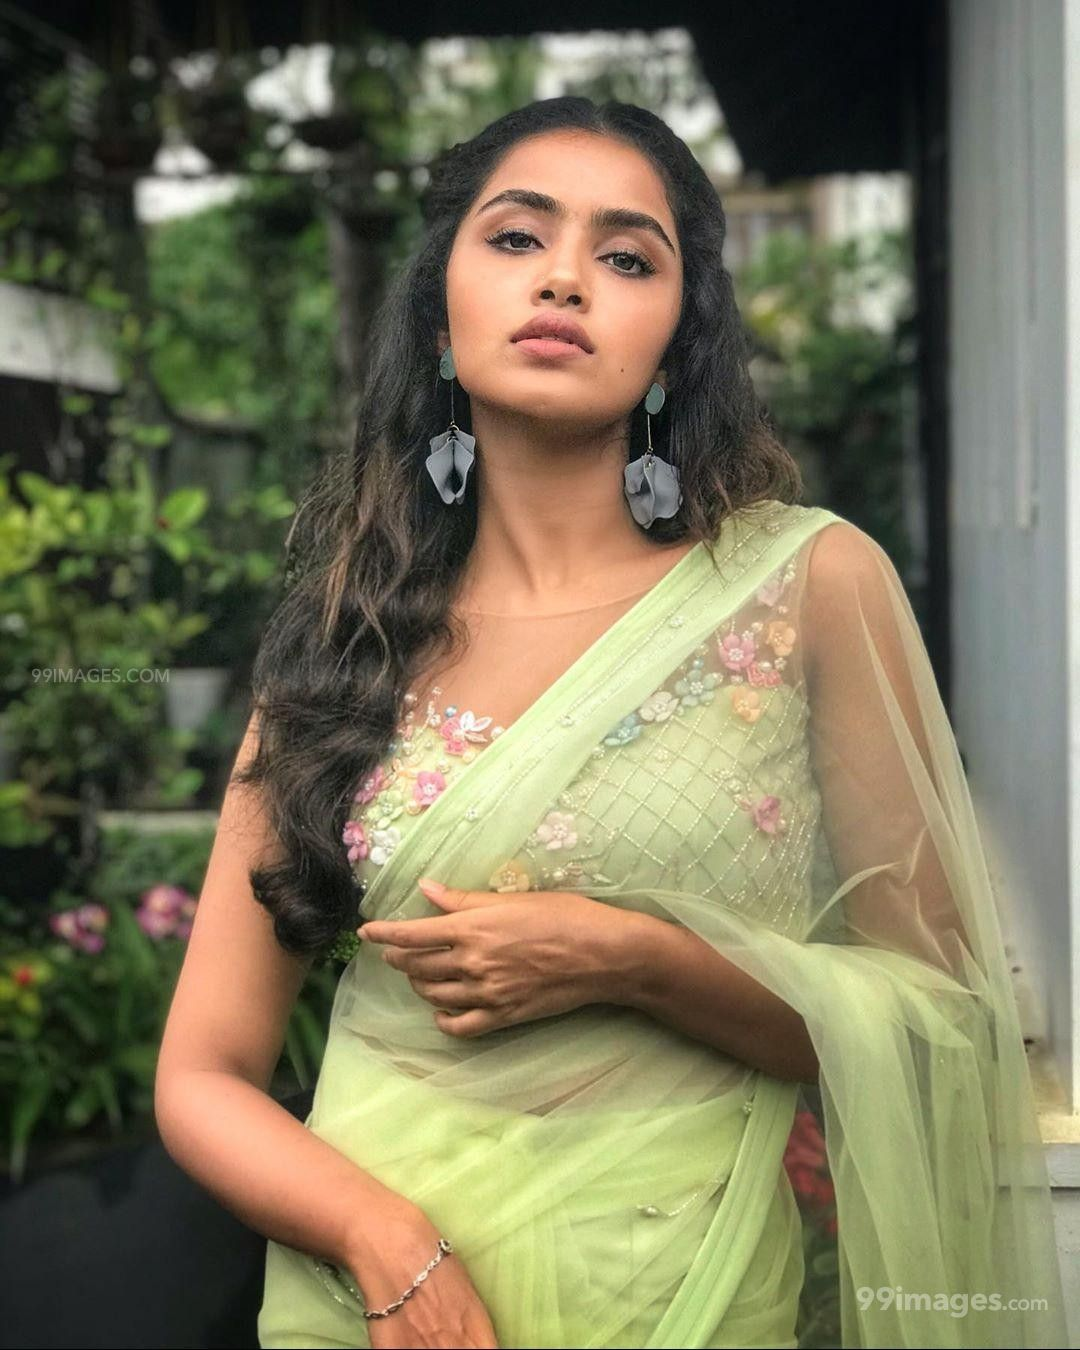 Anupama Parameswaran HD Wallpapers (Desktop Background / Android / iPhone) (1080p, 4k) (201031) - Anupama Parameswaran